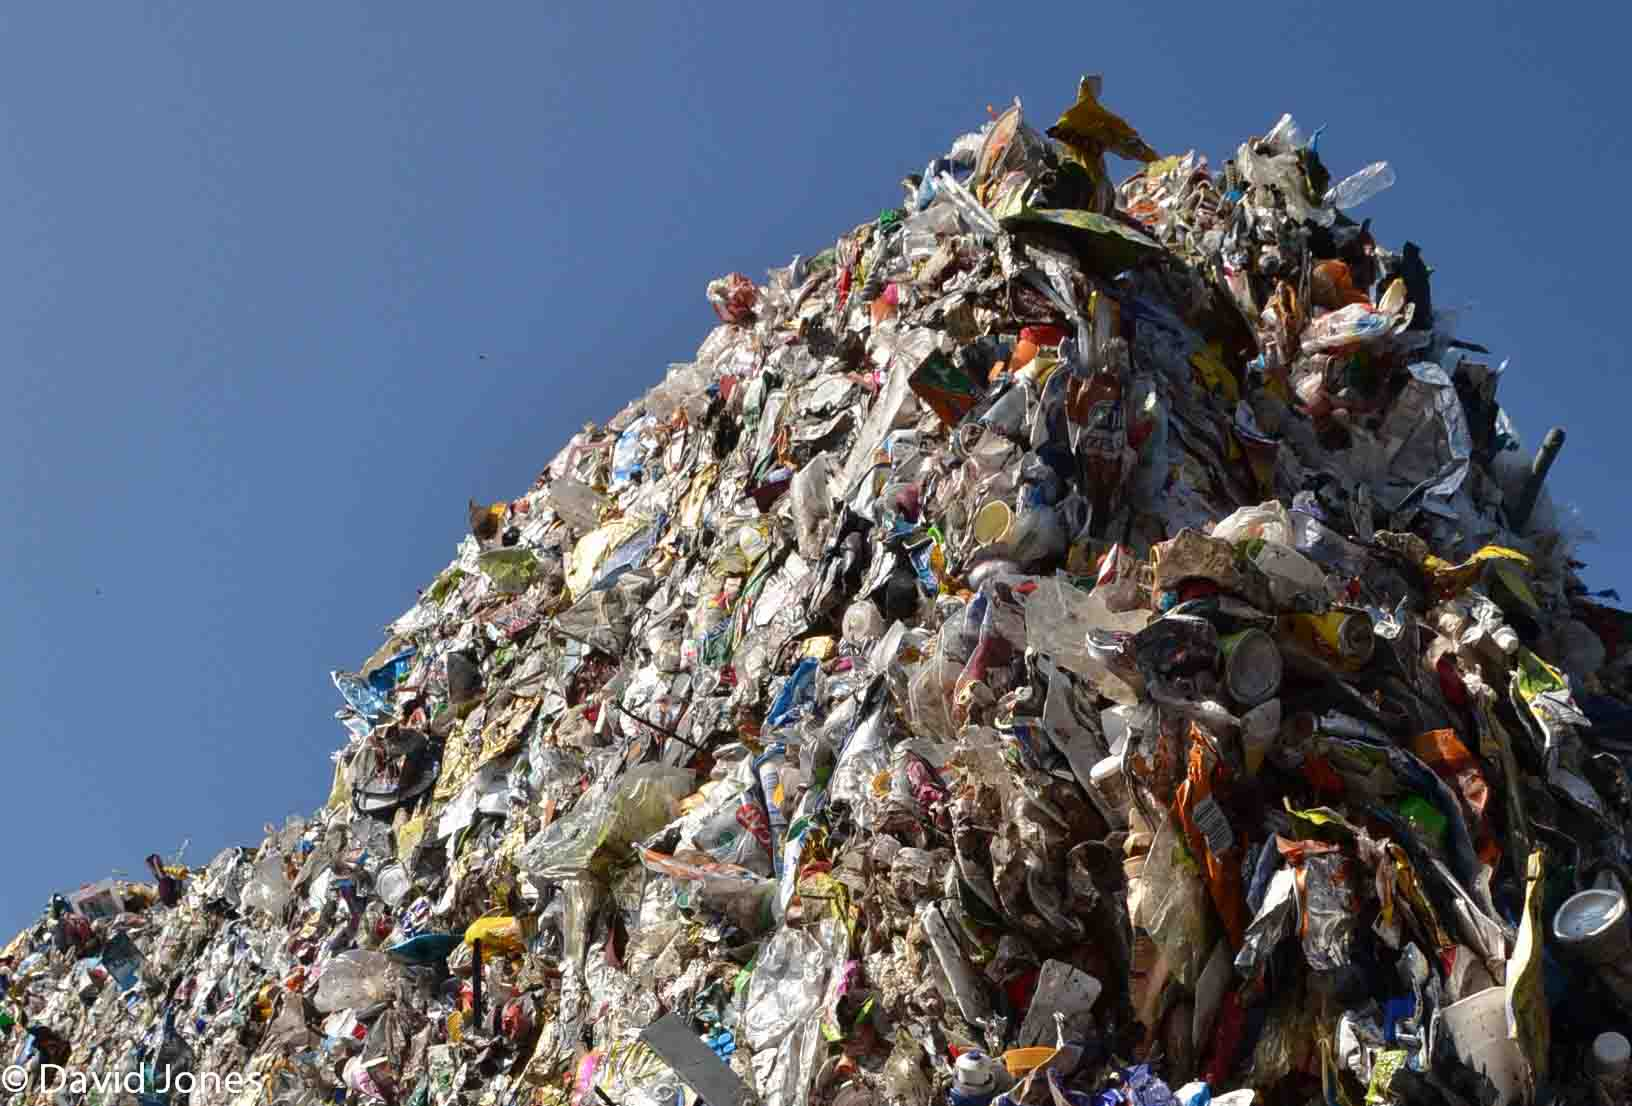 Mountains of plastic waste